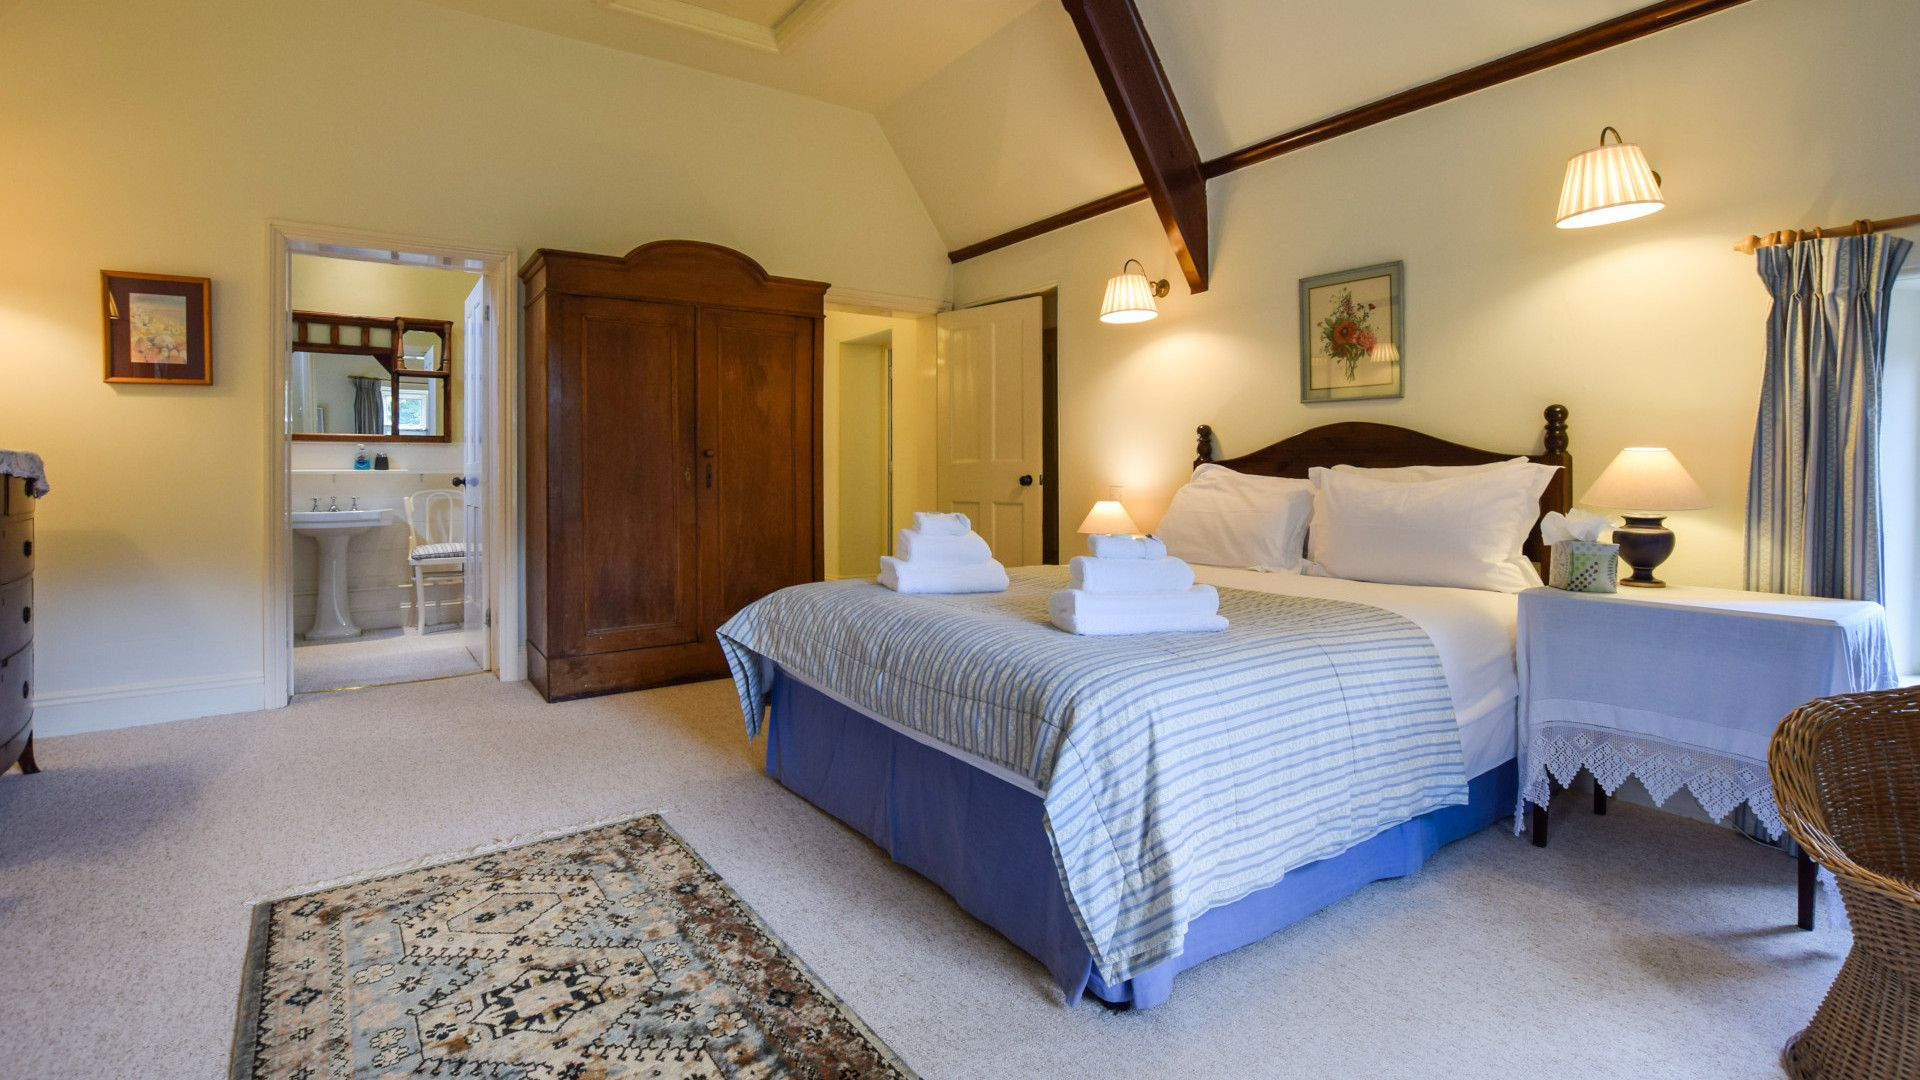 Bedroom 1 with en-suite, Bellhouse, Bolthole Retreats